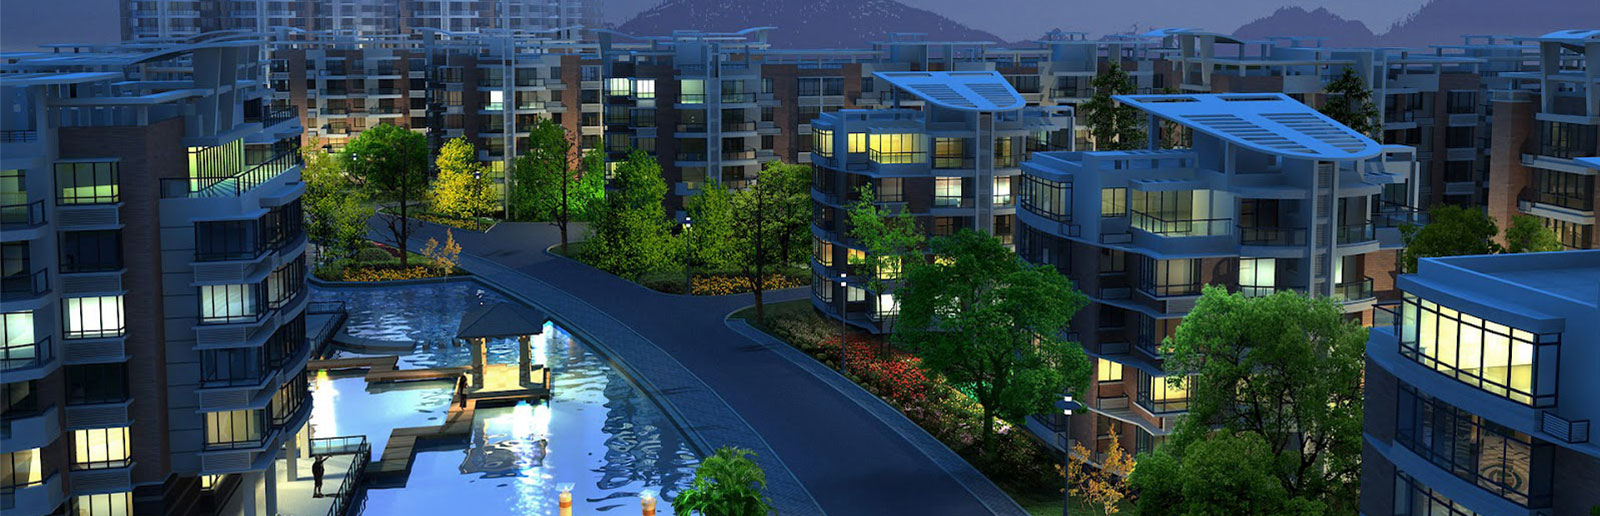 Properties In Neral Galaxy City Neral Guptari Group